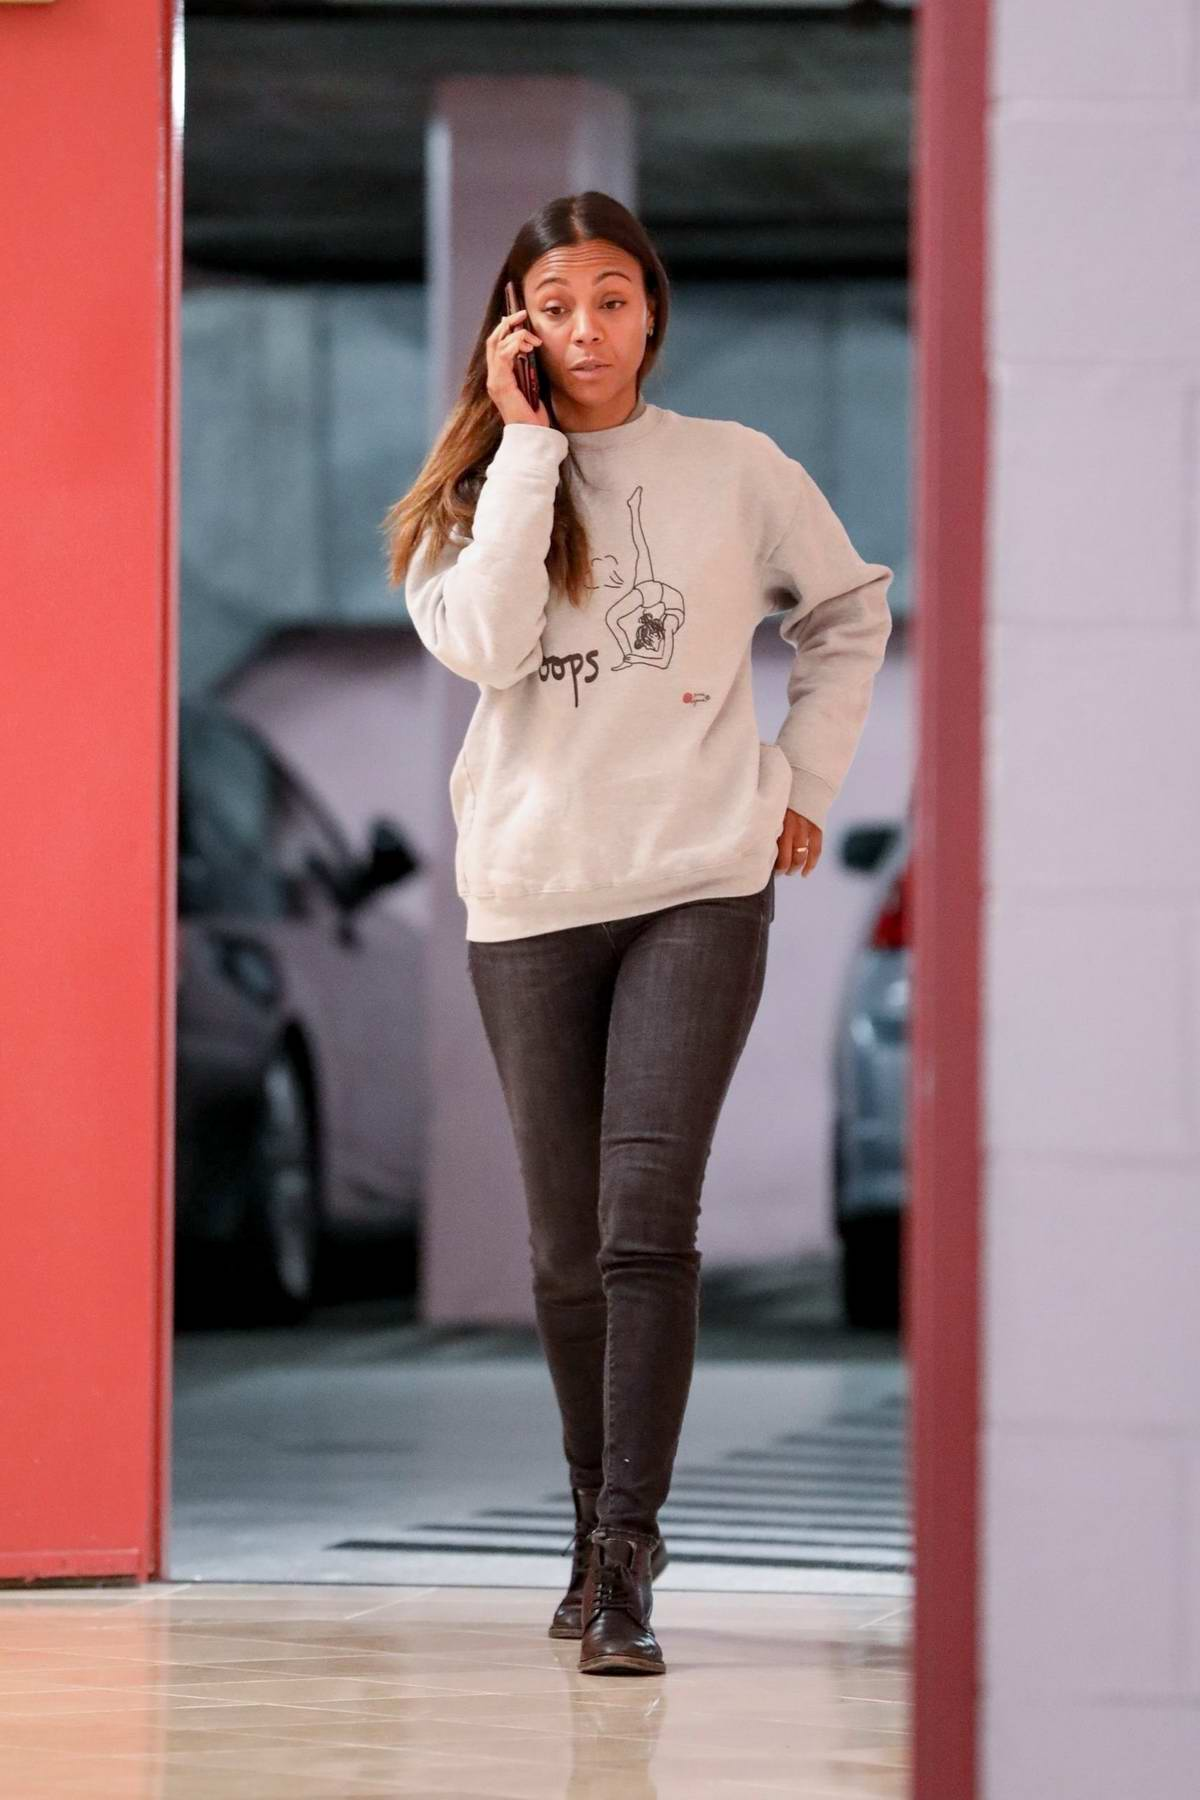 Zoe Saldana seen chatting on her phone as she arrives at a medical building in Beverly Hills, California